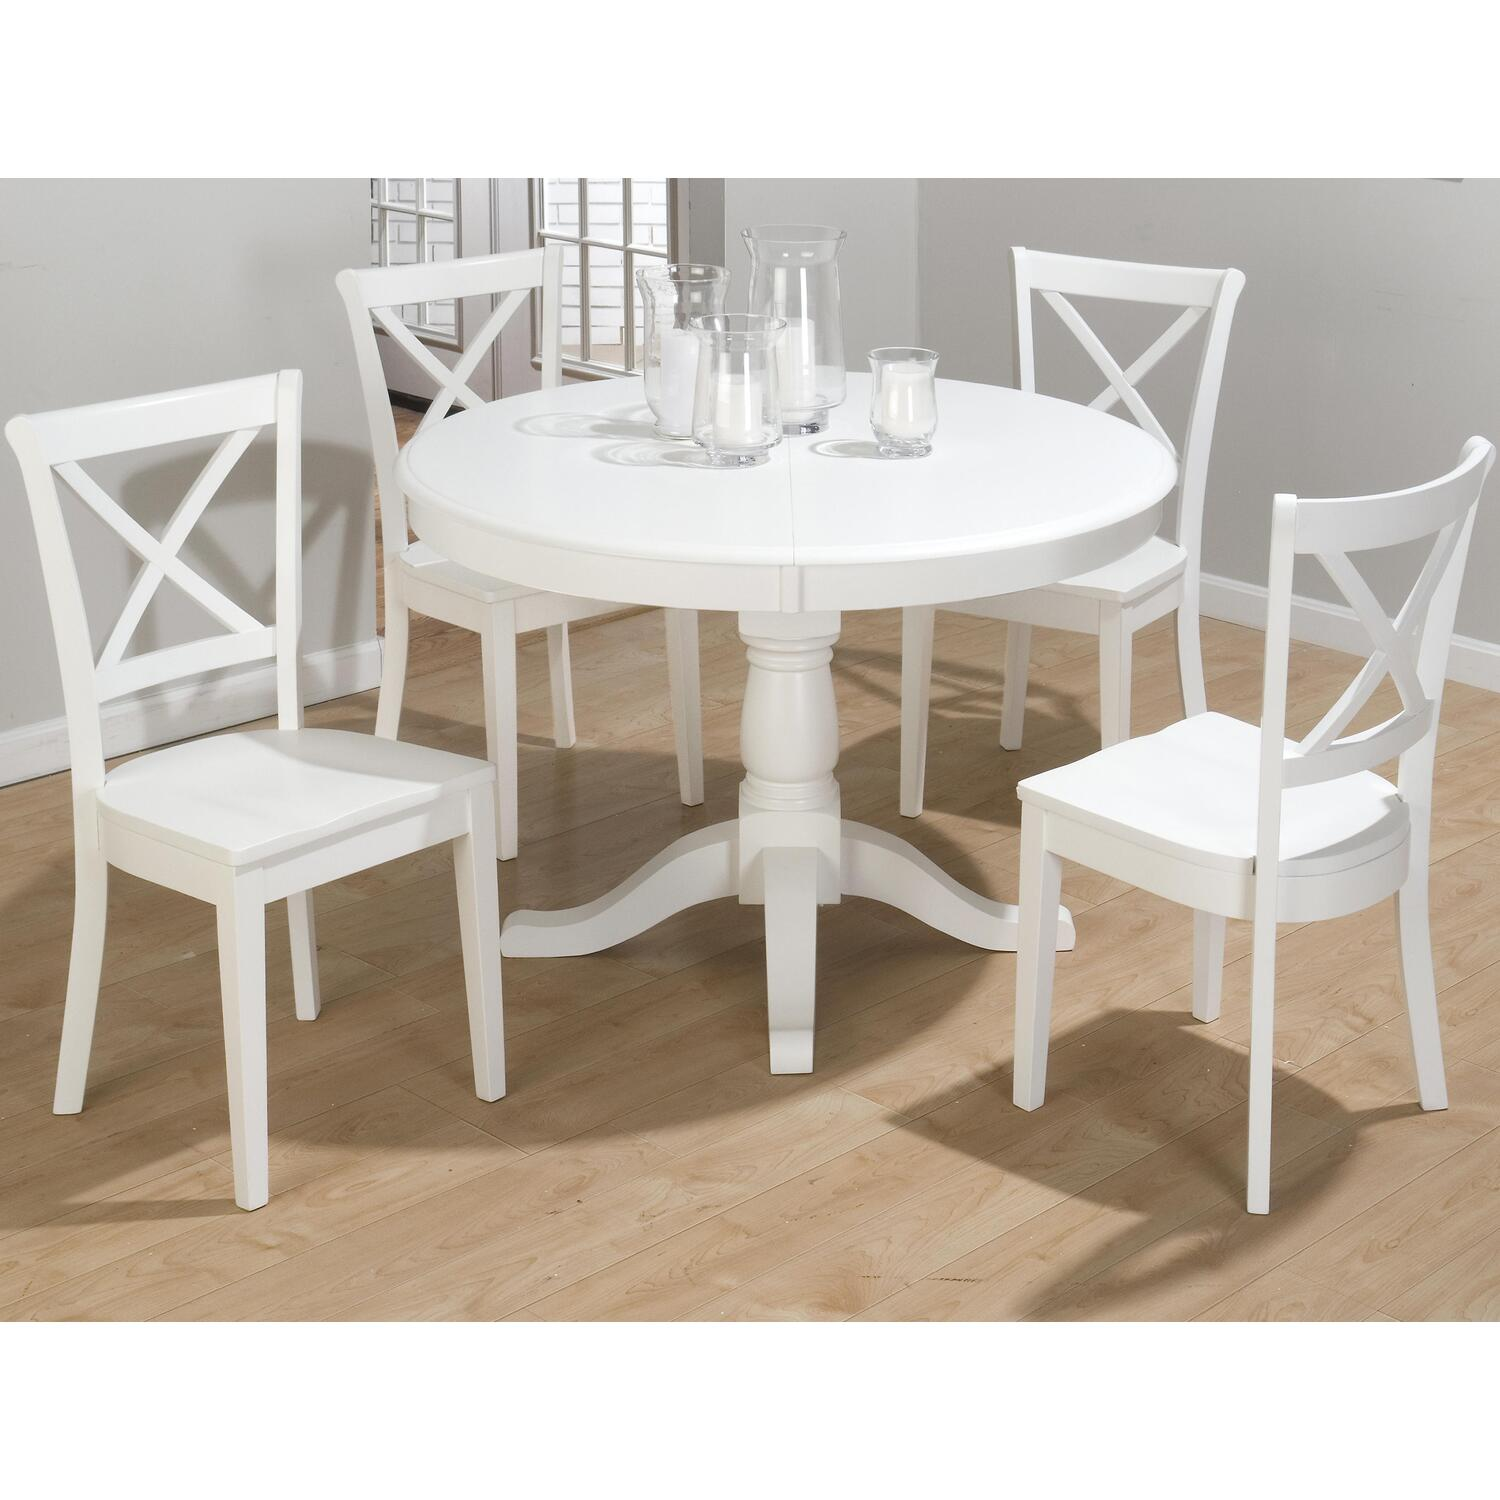 Jofran casper white finished 5 pc dining set by oj for White dinette sets